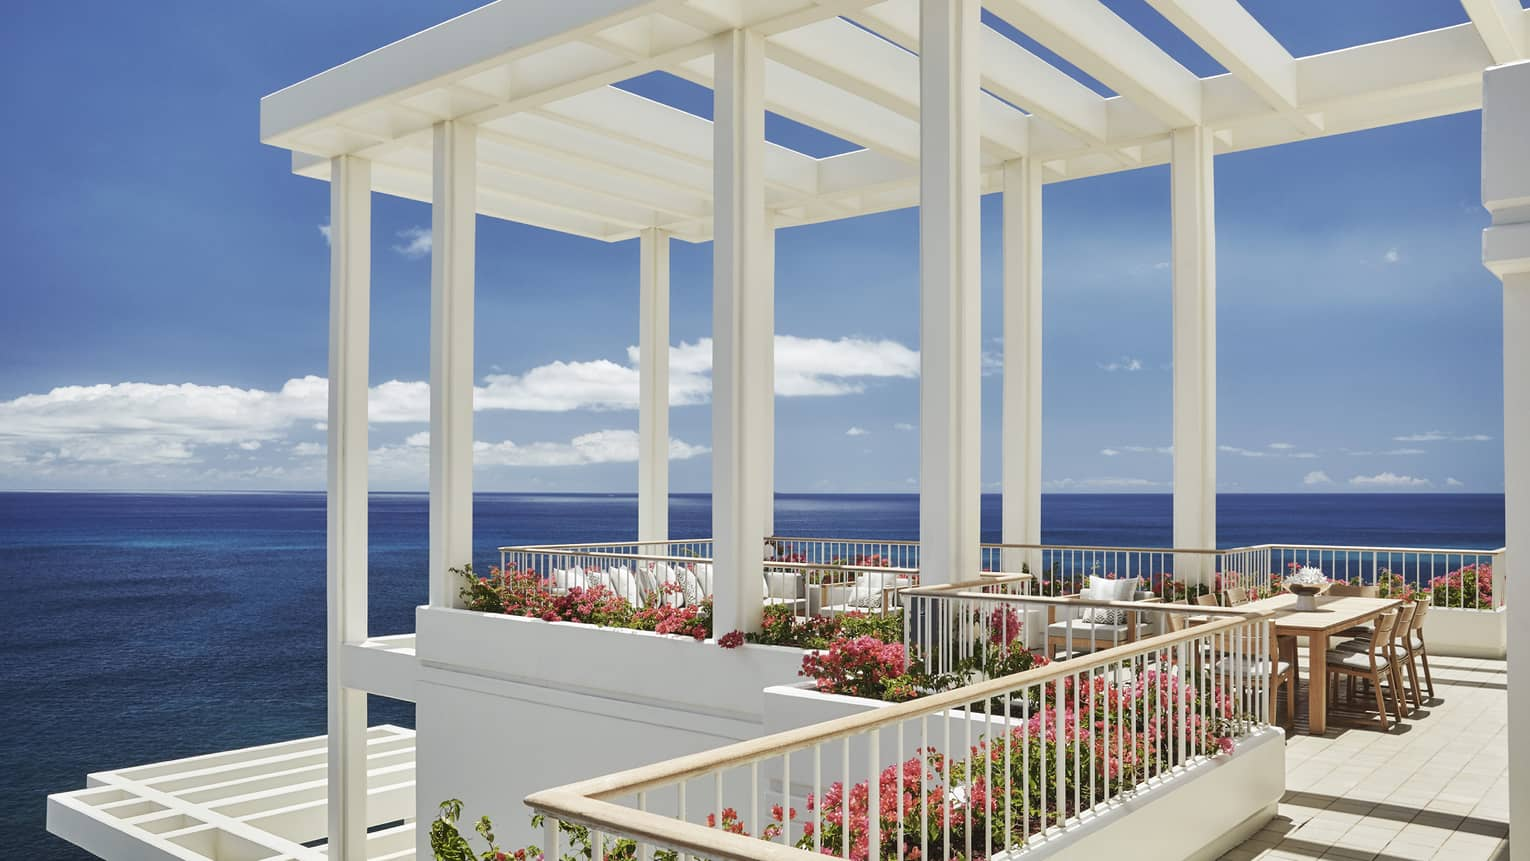 Penthouse Suite patio tables, chairs under white pergola, tropical pink flowers